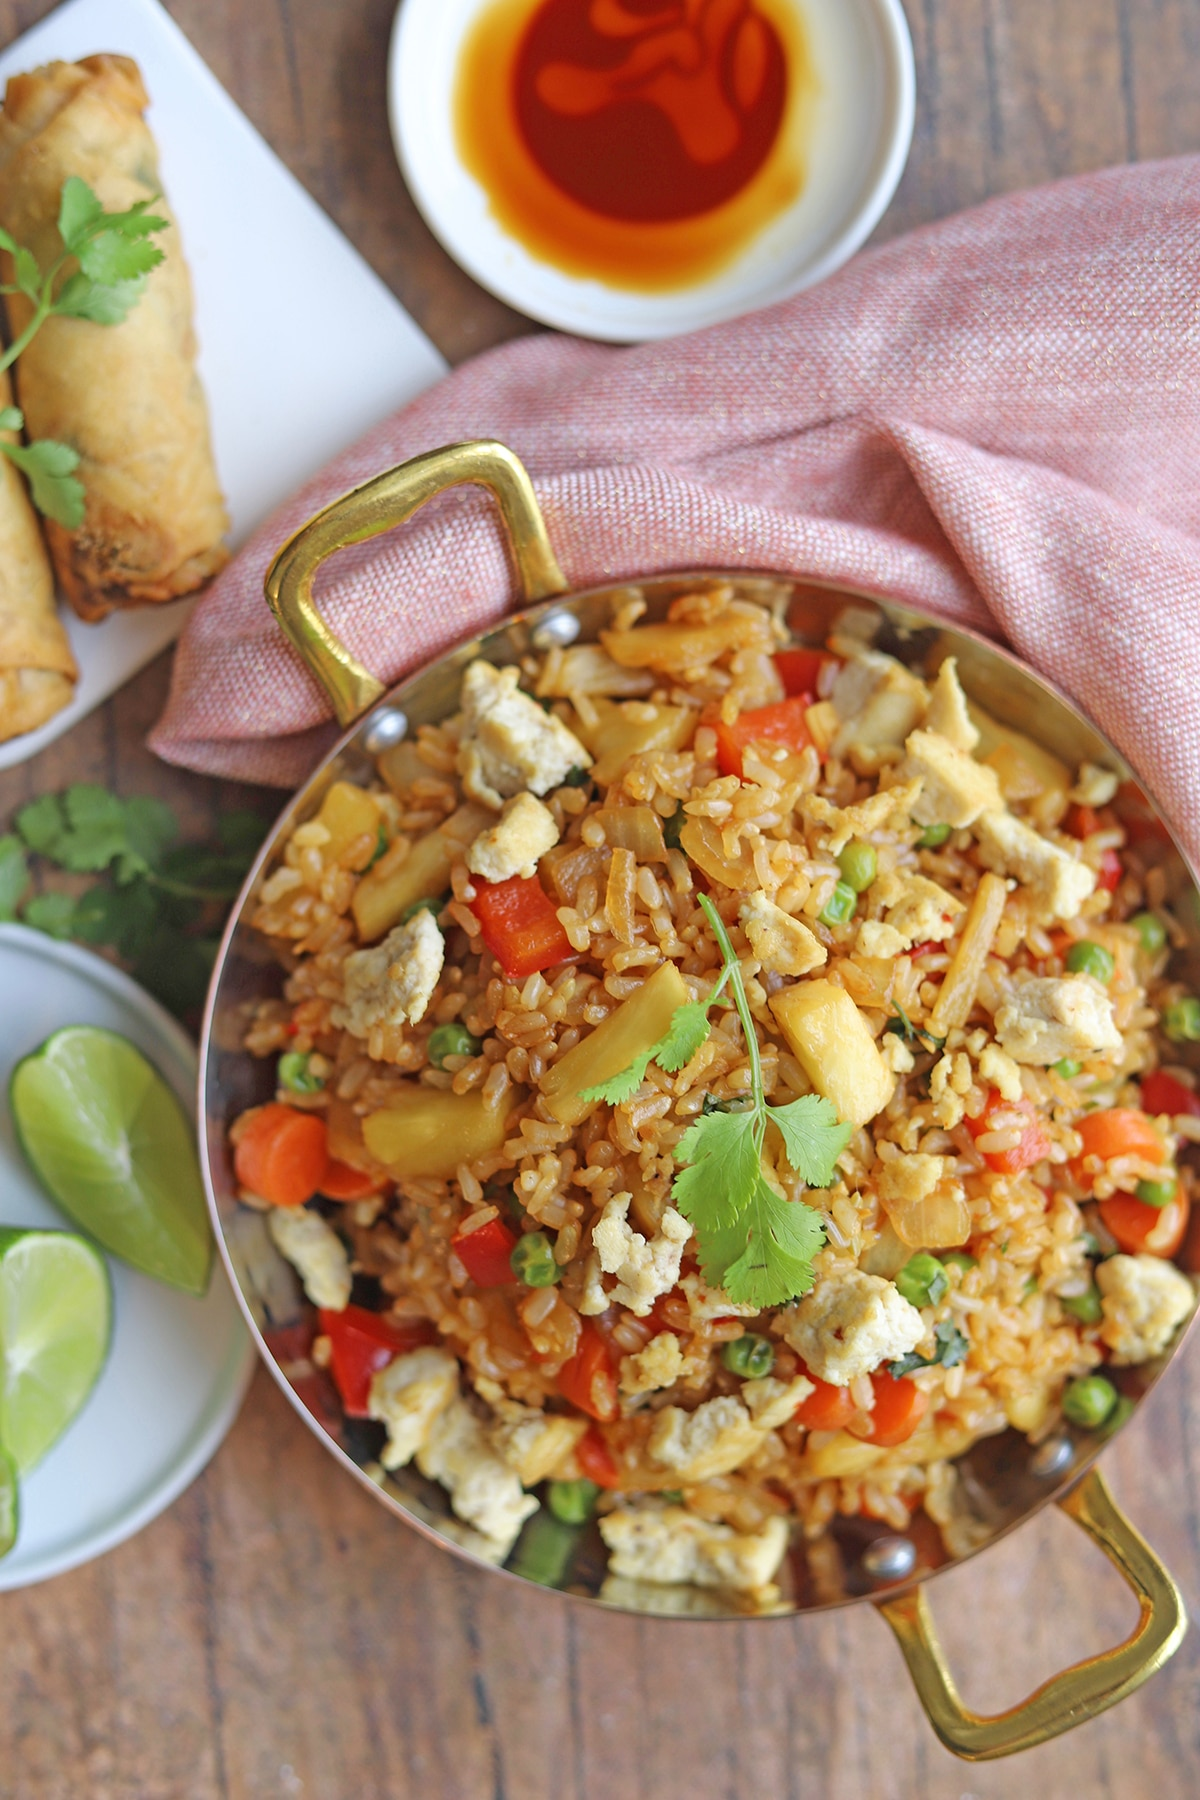 Pineapple fried rice on table with limes, spring rolls, and tamari.